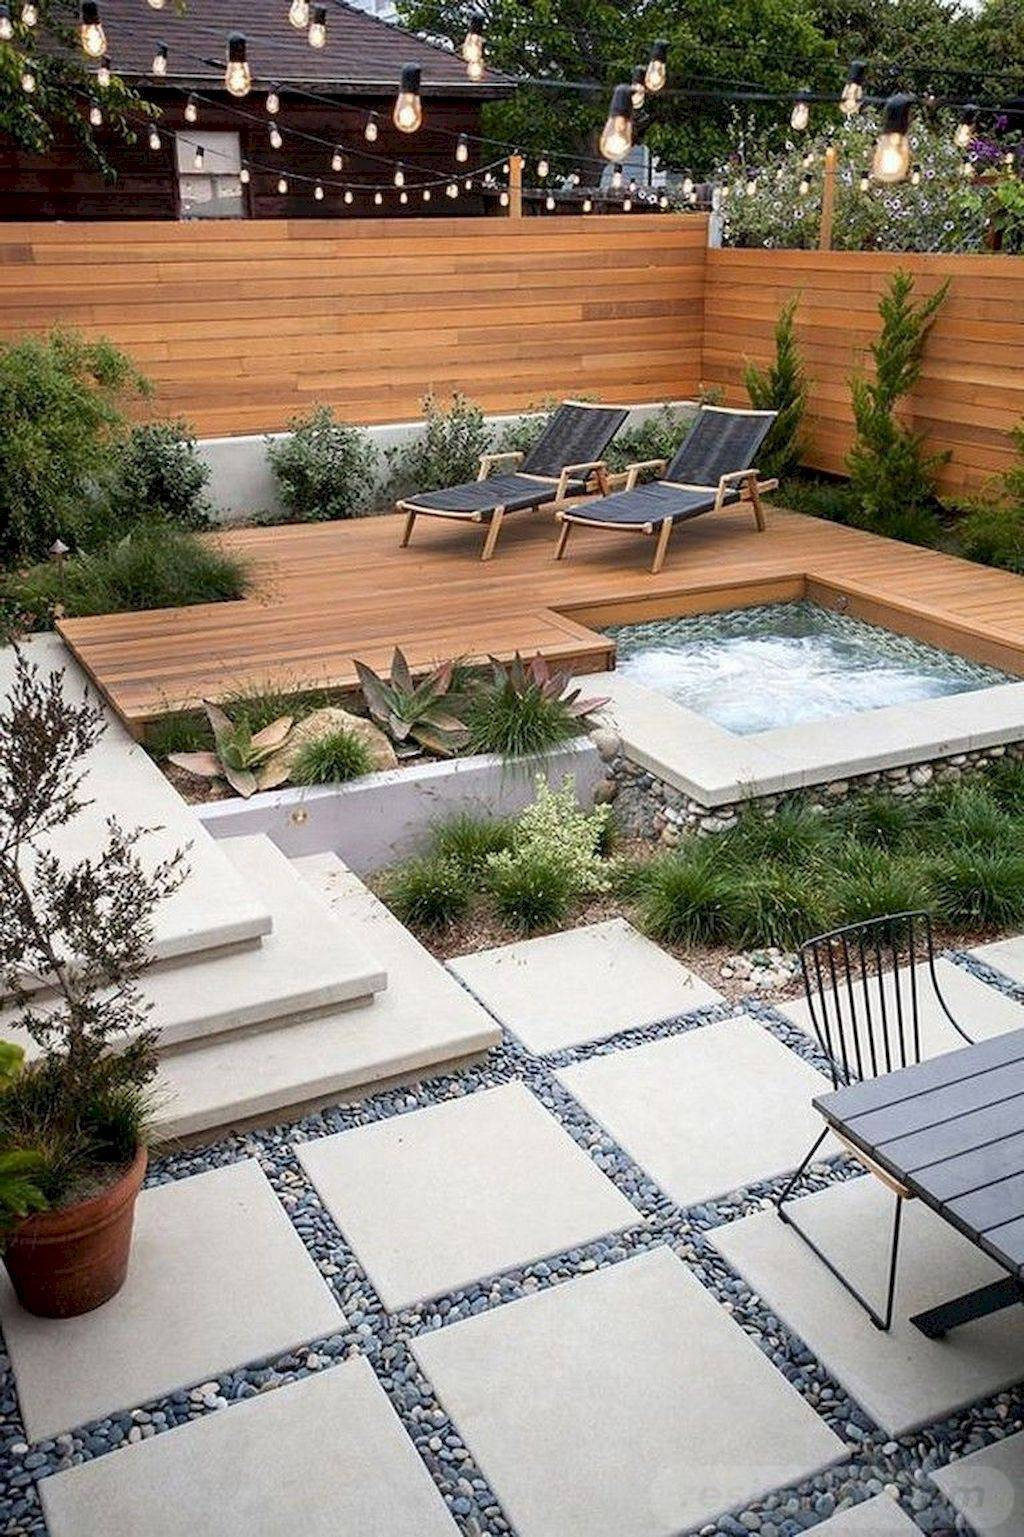 amazing garden ideas-776167317010706639